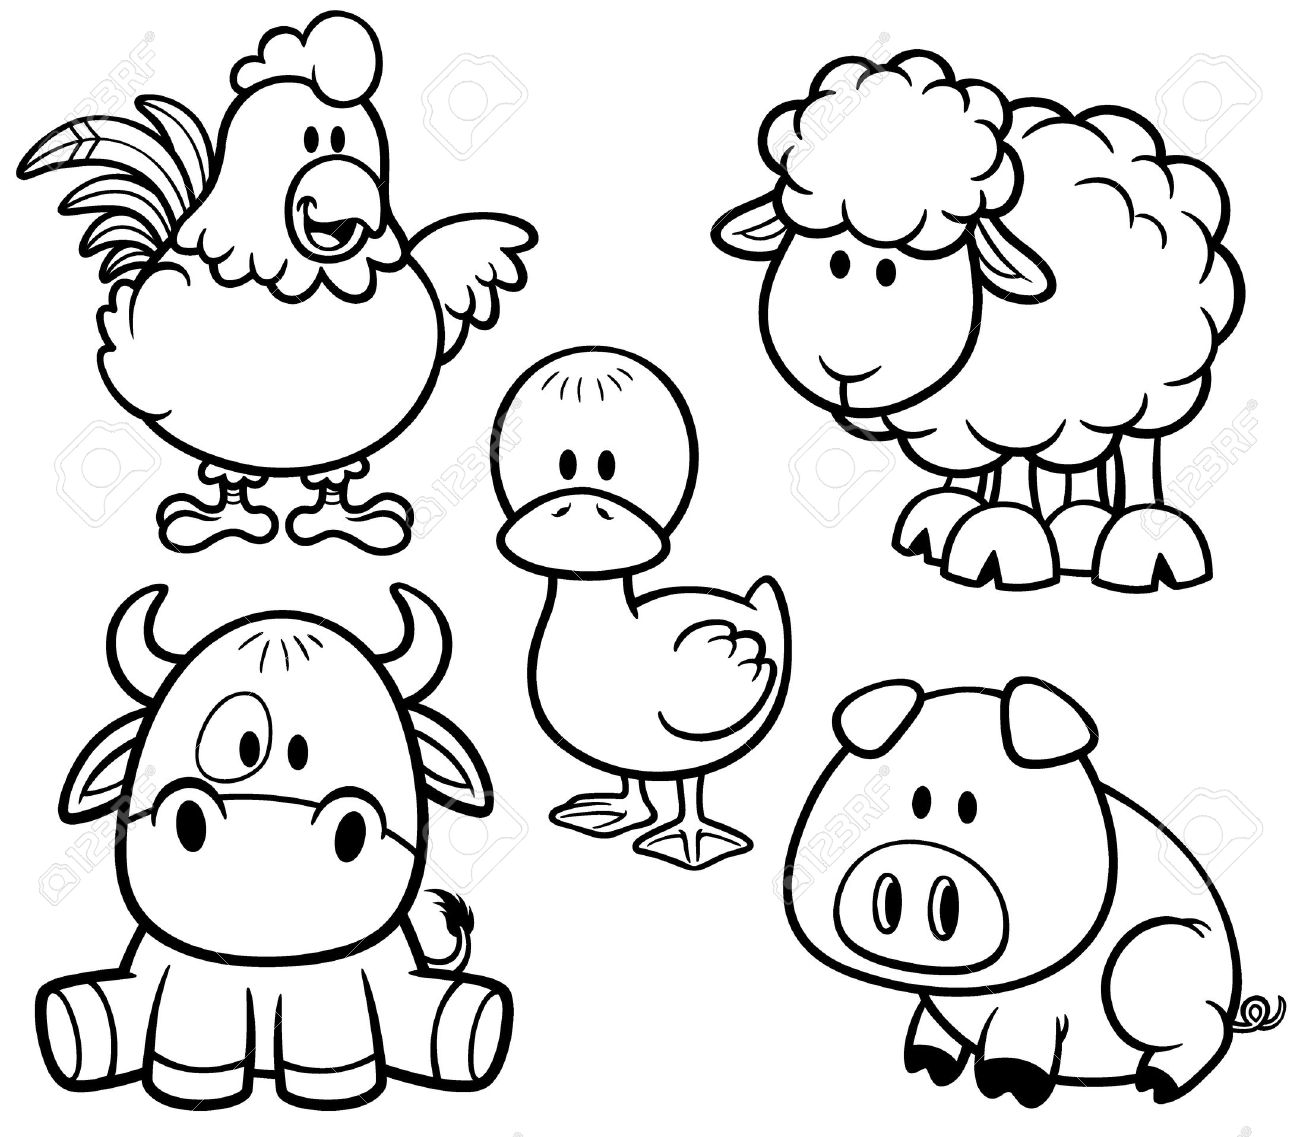 cute coloring animal pages cute baby farm animal coloring pages best coloring pages cute animal pages coloring